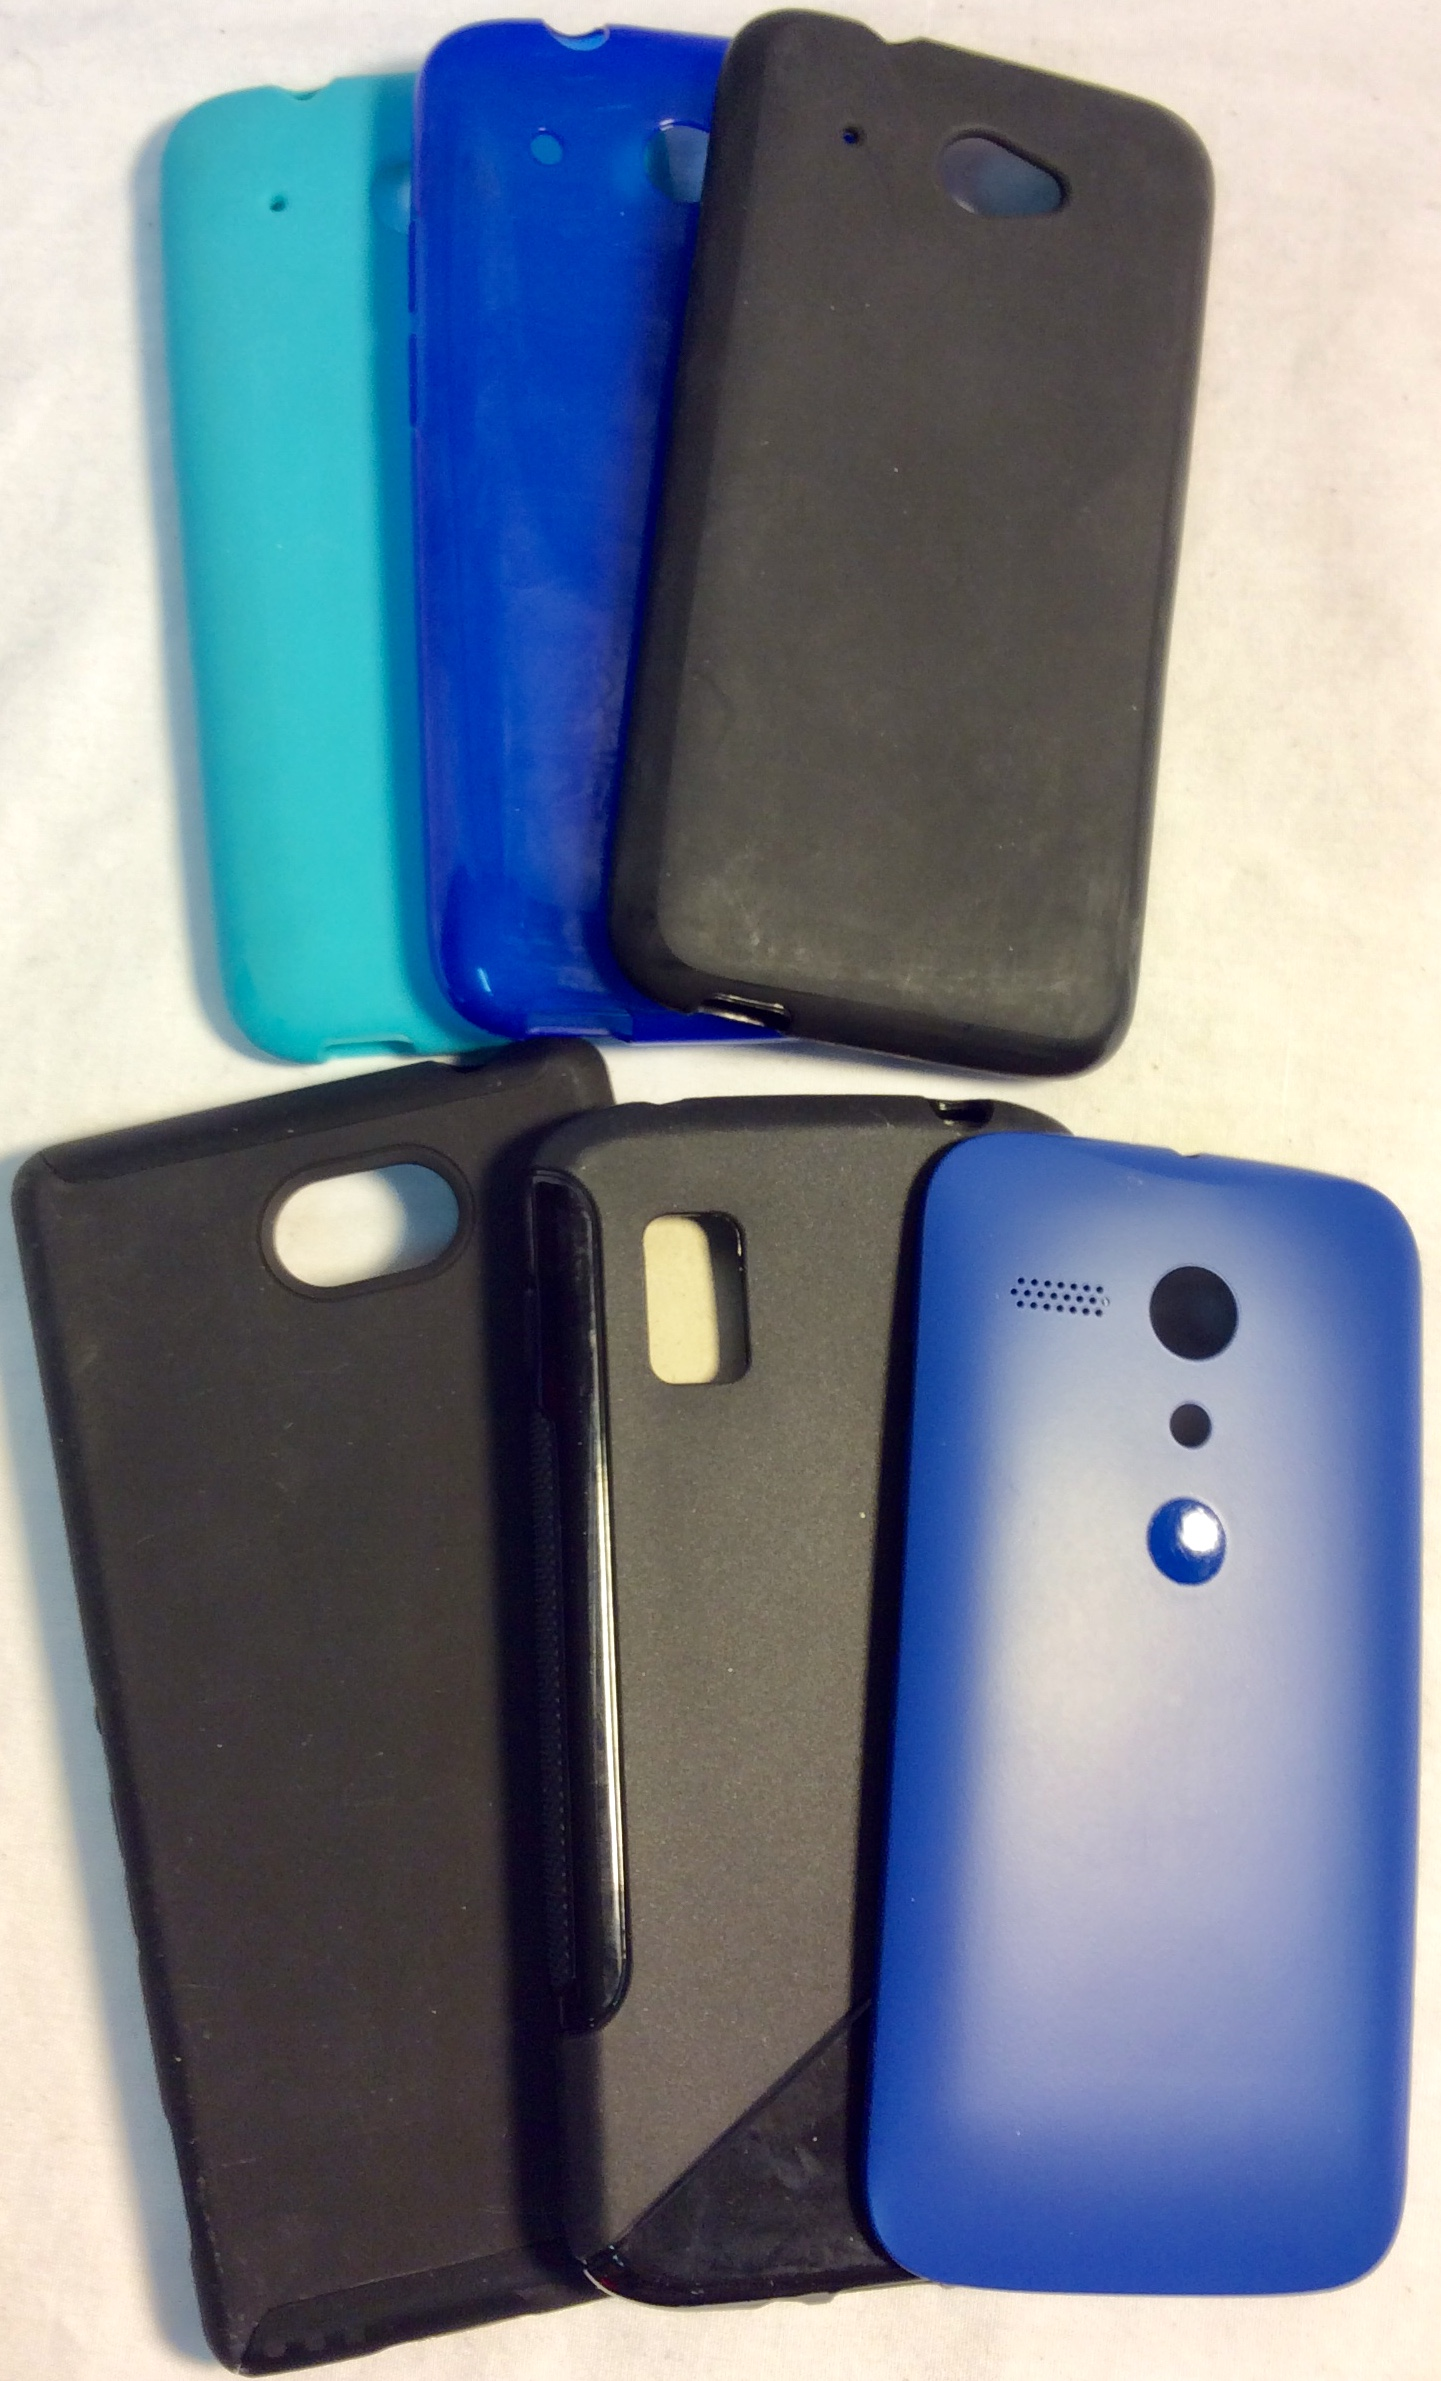 Assorted phone cases for Sony, Motorola, LG, HTC